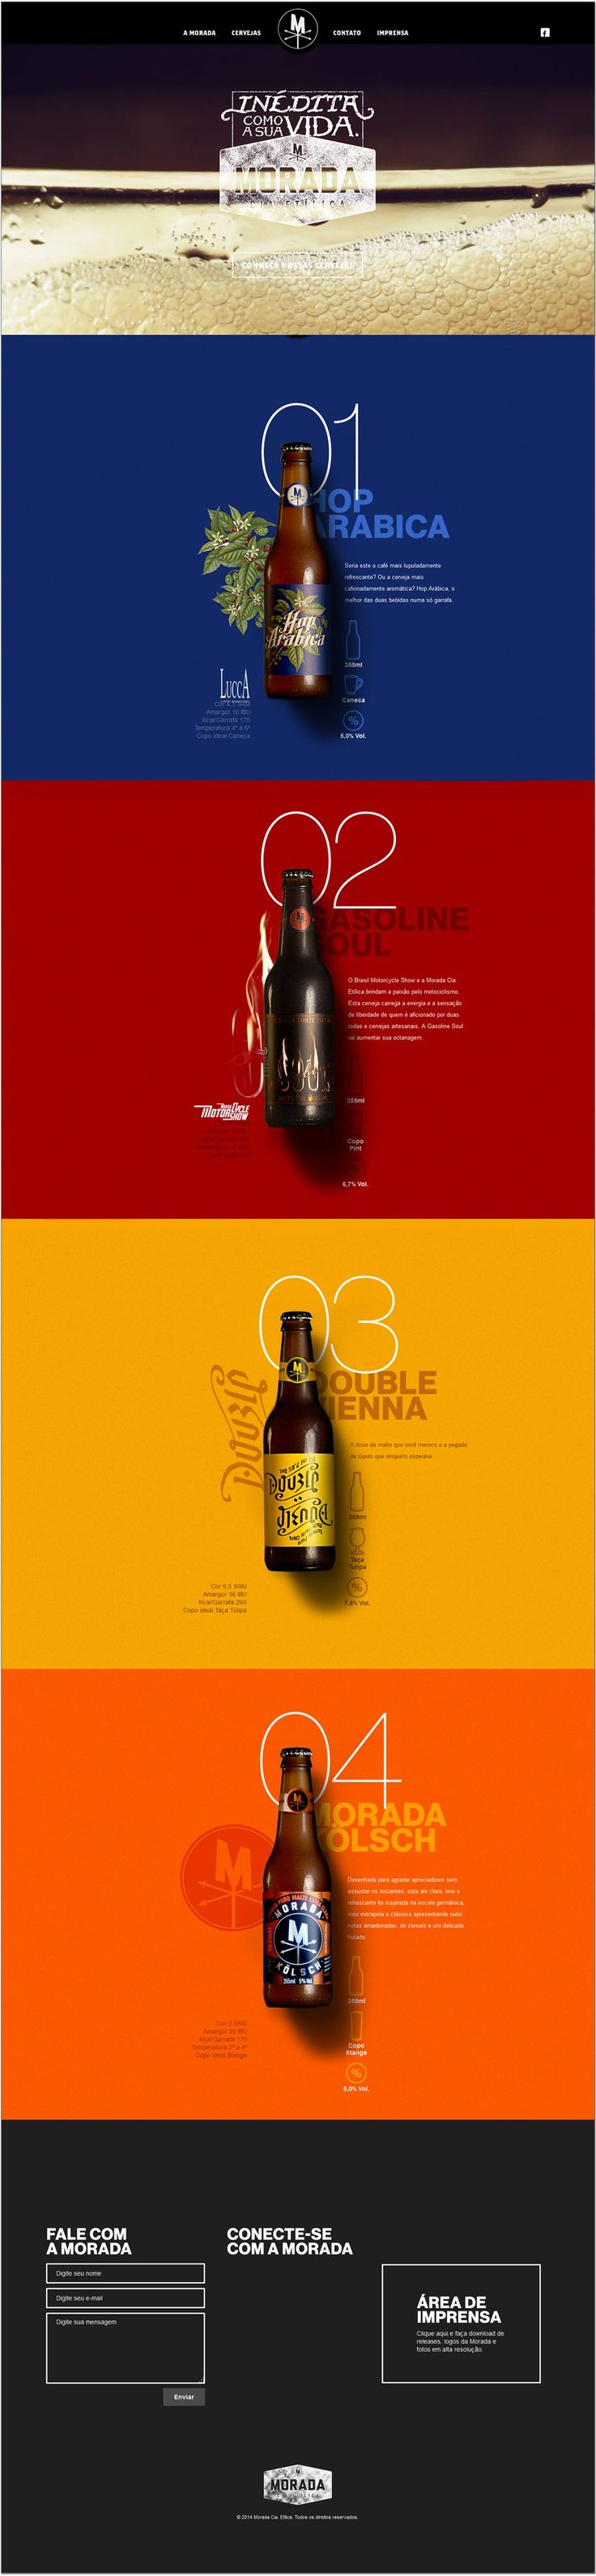 Unique Web Design, Morada #WebDesign #Design